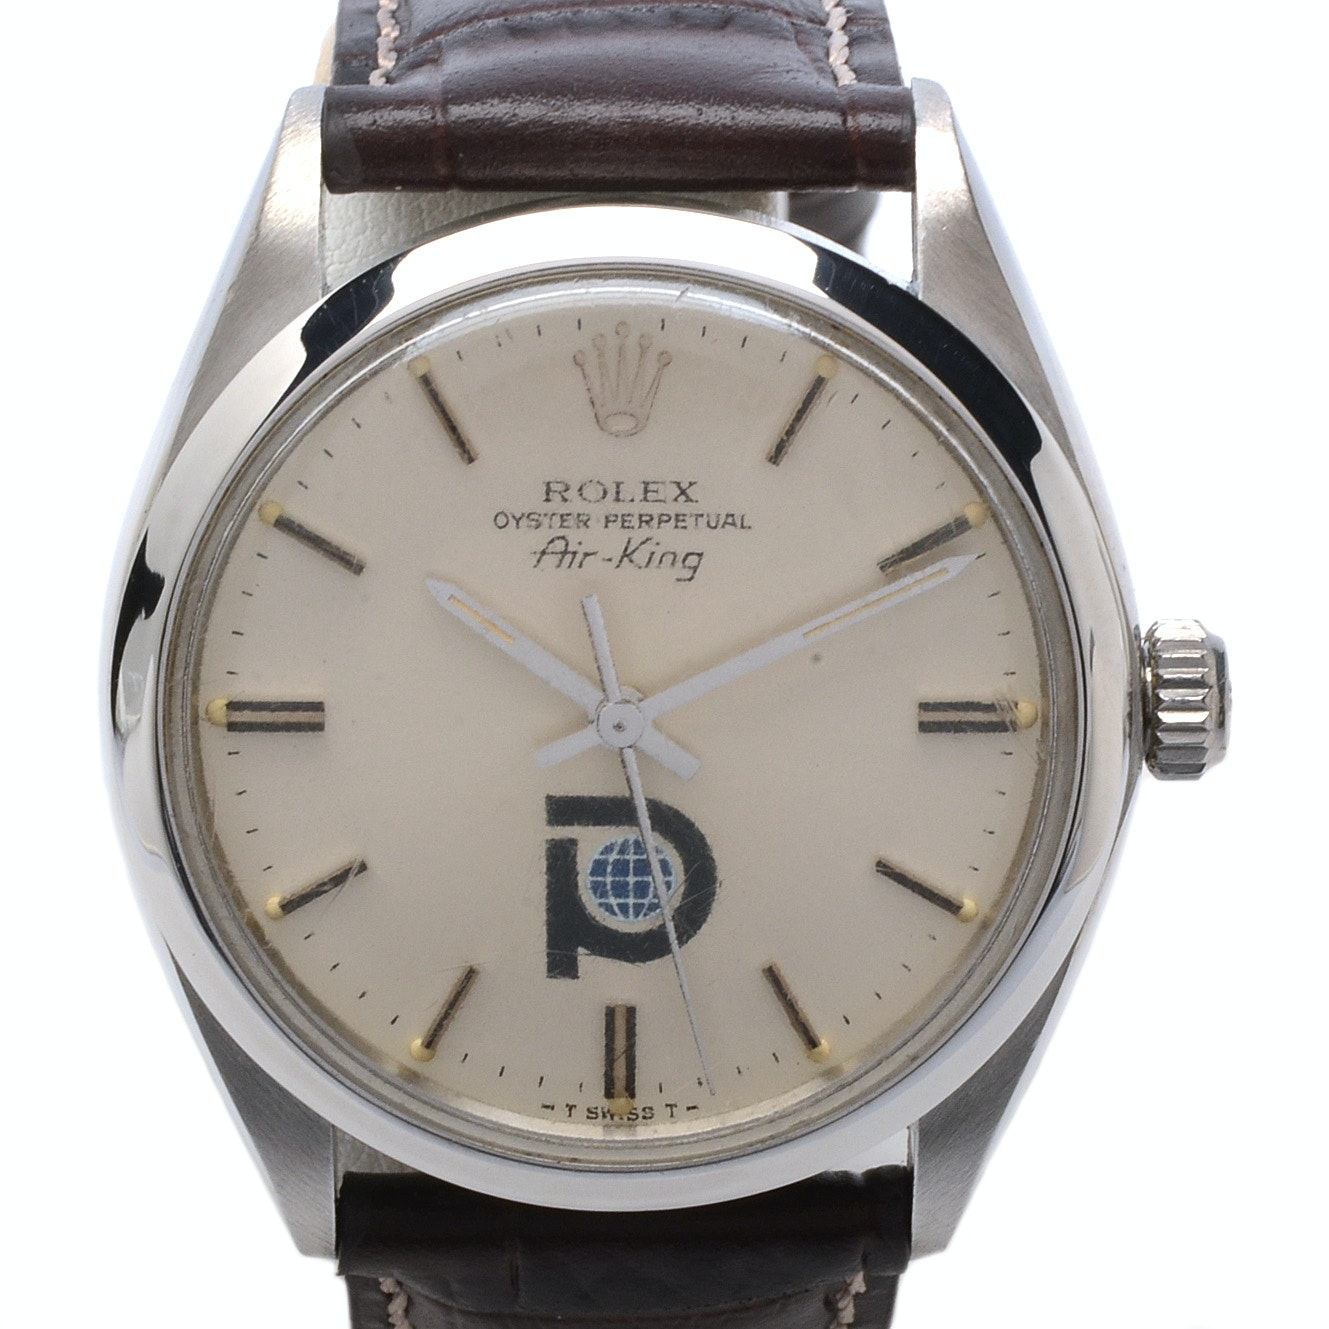 Vintage Rolex Oyster Perpetual Air-King Wristwatch